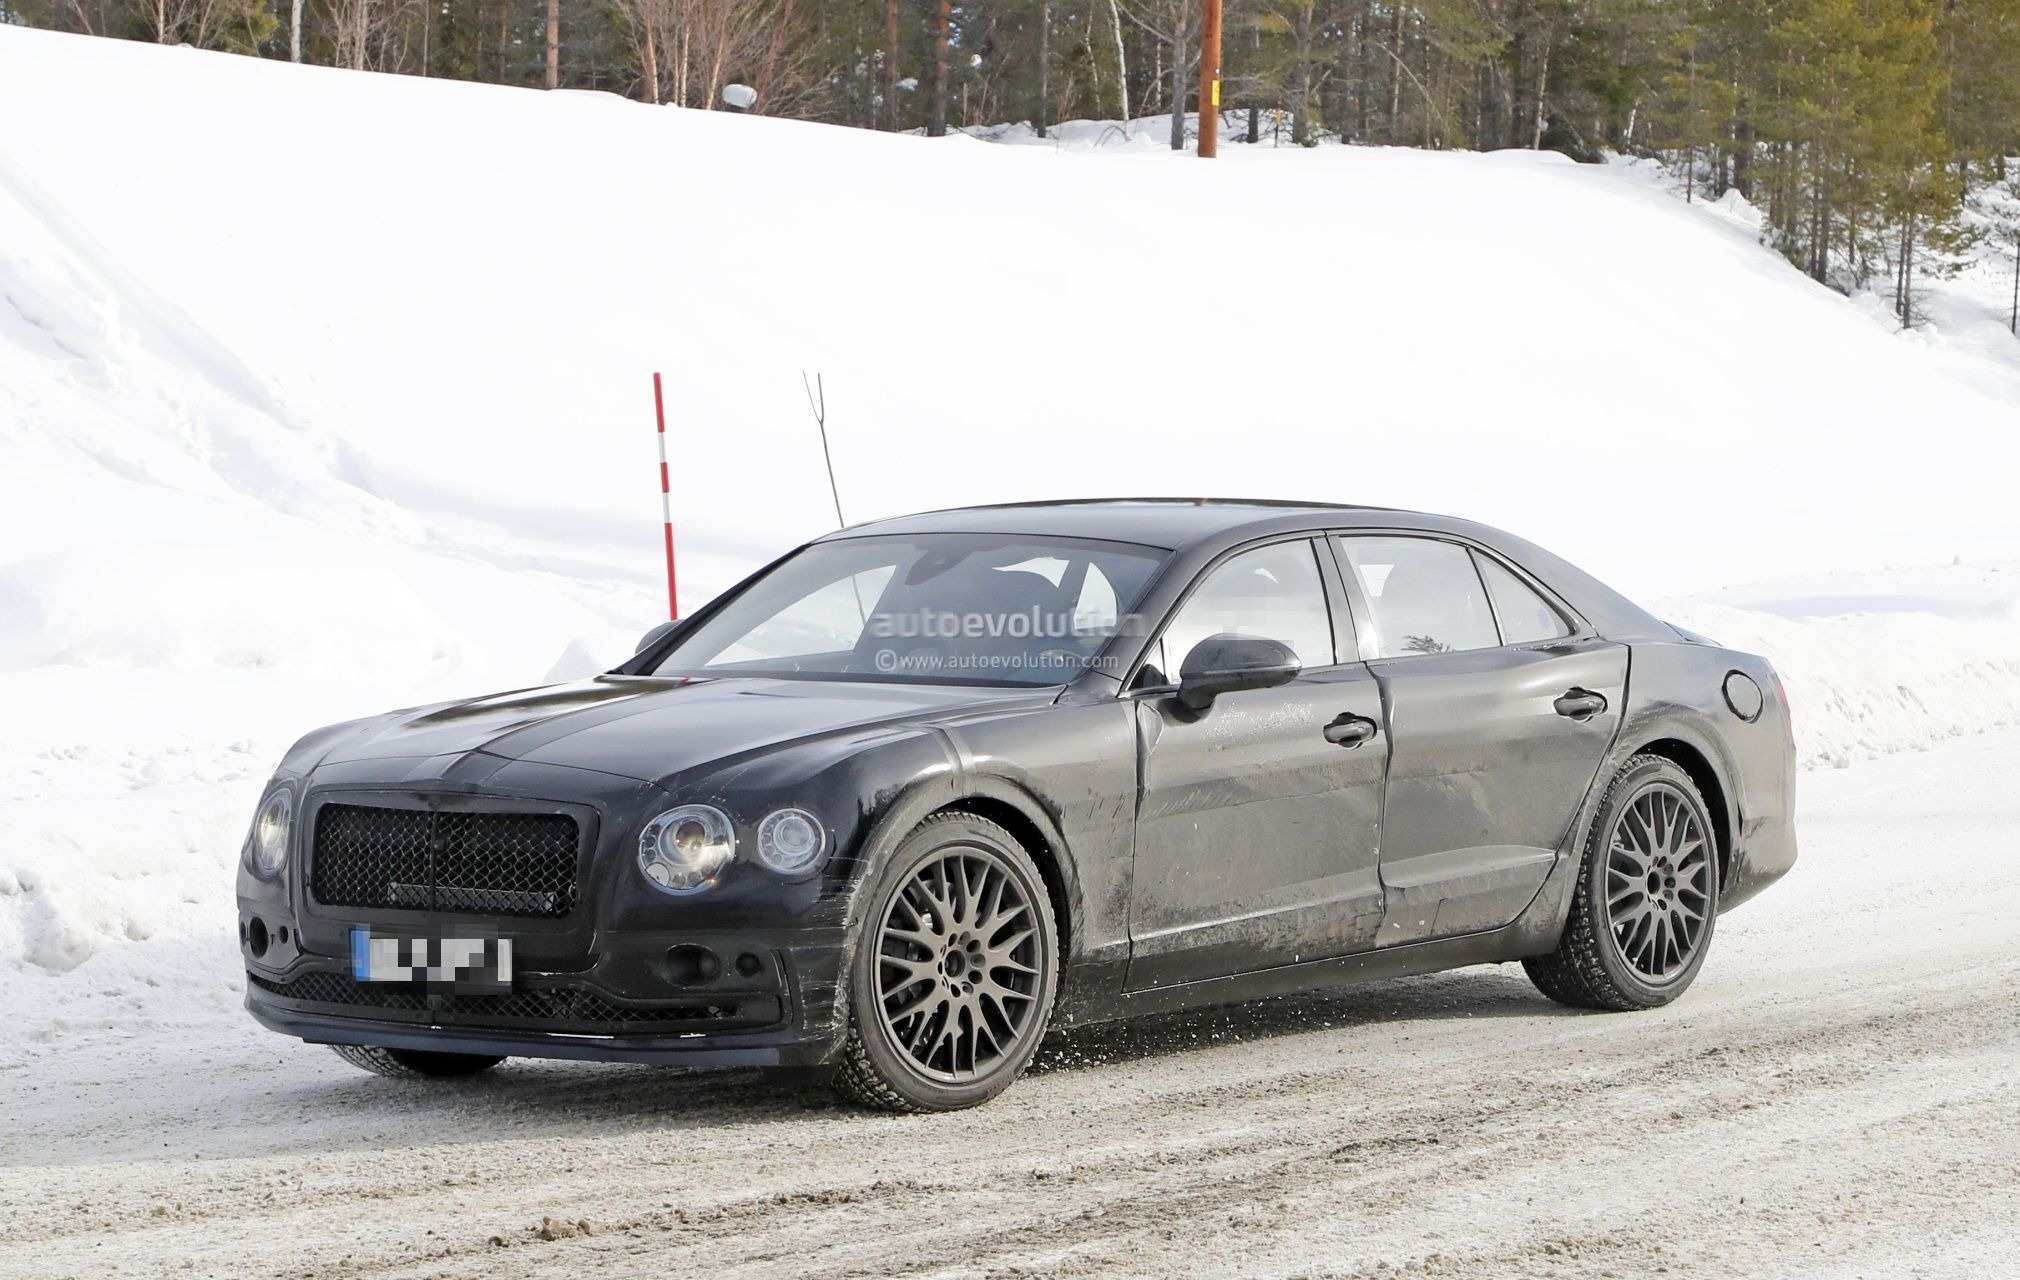 55 New 2020 Bentley Flying Spur Engine